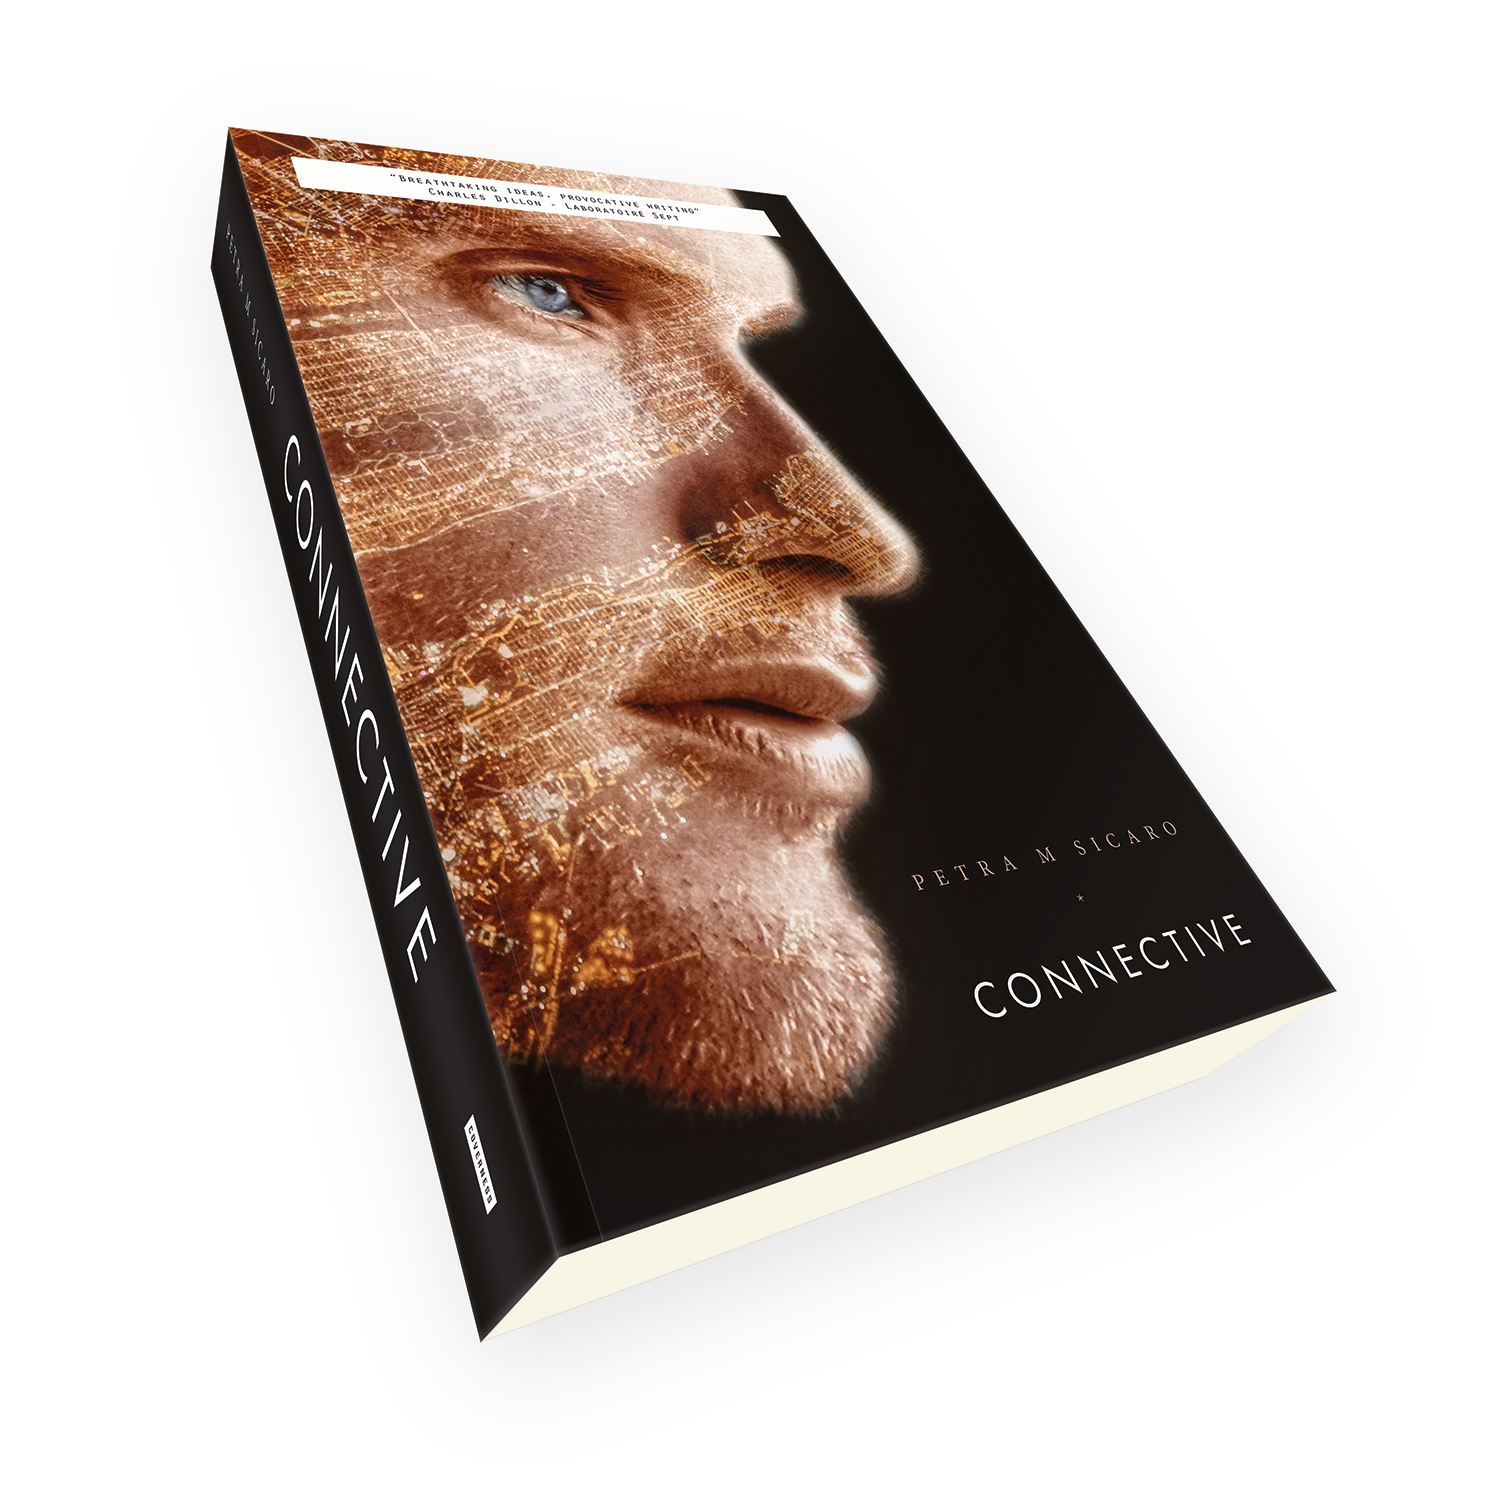 'Connective' is a bespoke cover design for a modern cyber-themed scifi novel. The book cover was designed by Mark Thomas, of coverness.com. To find out more about my book design services, please visit www.coverness.com.